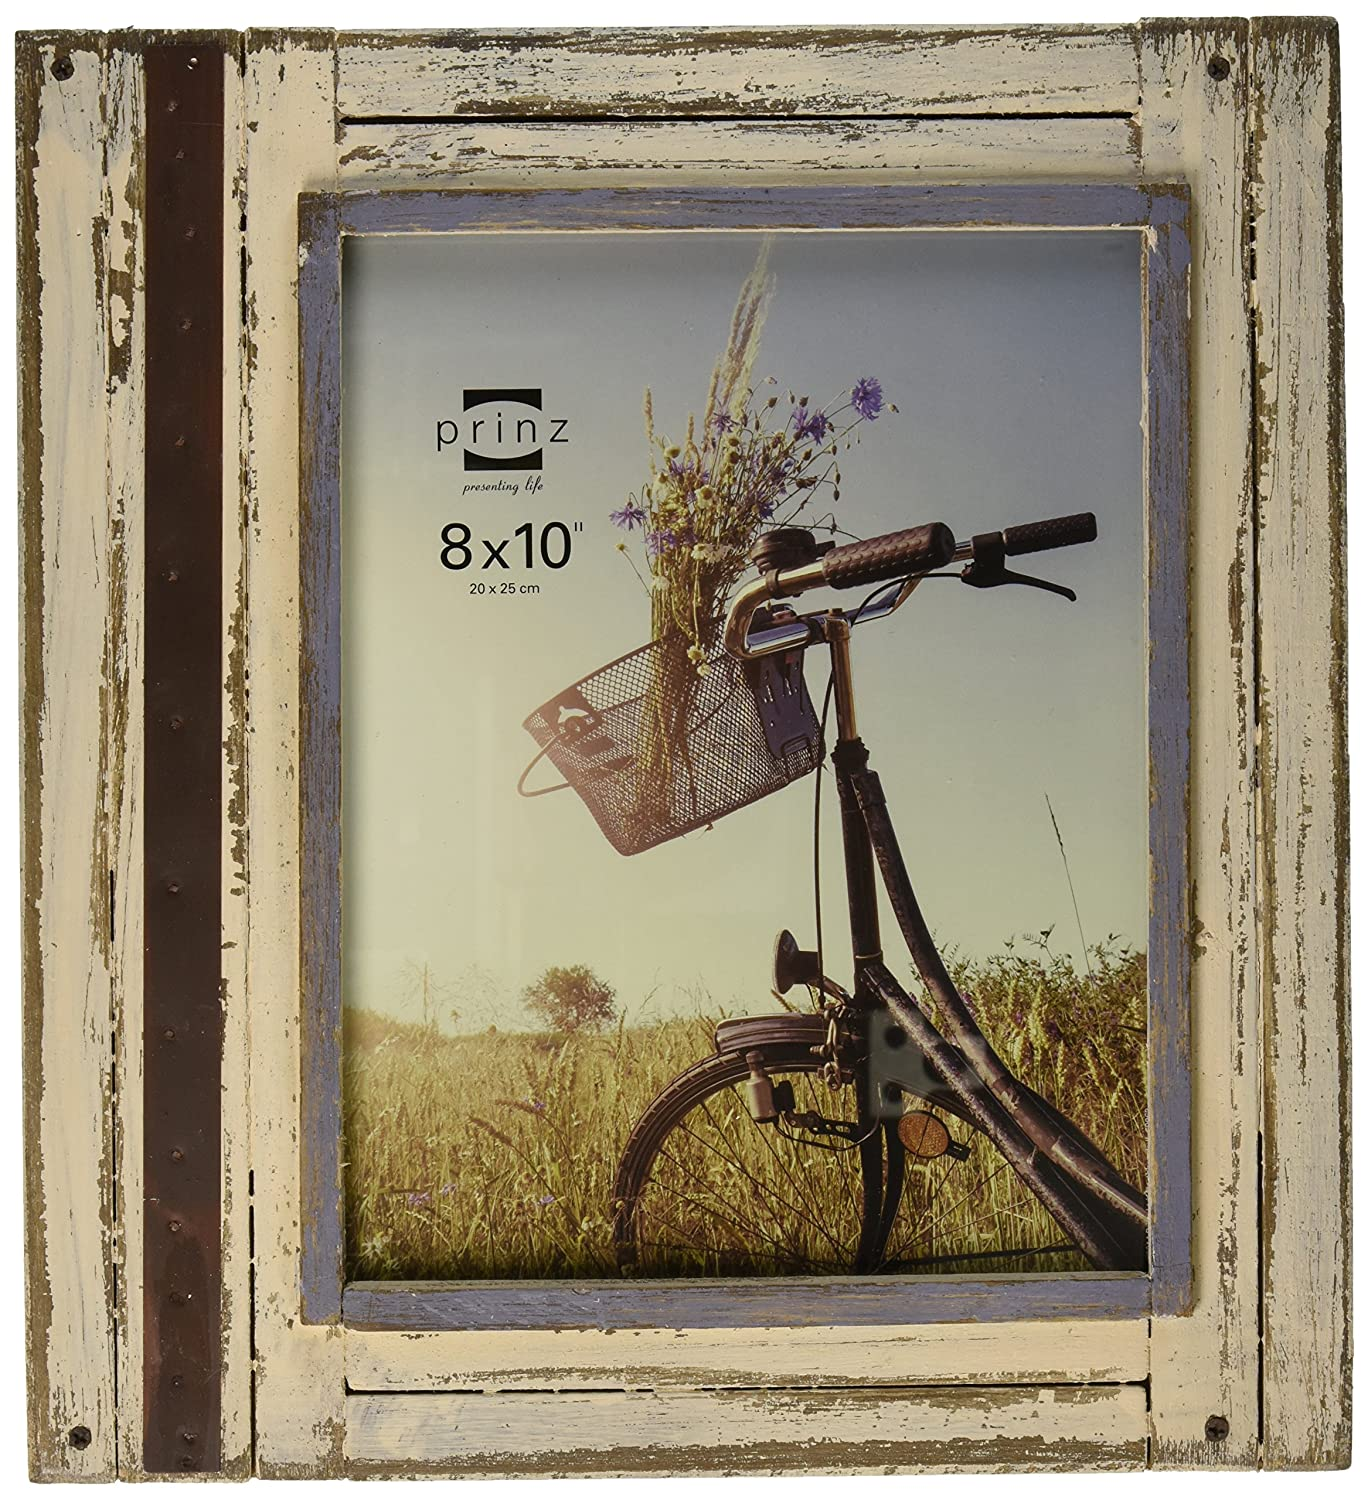 Prinz Rustic River Wood Frame in Distressed White Finish, 4 by 6 4 by 6 3700-0146